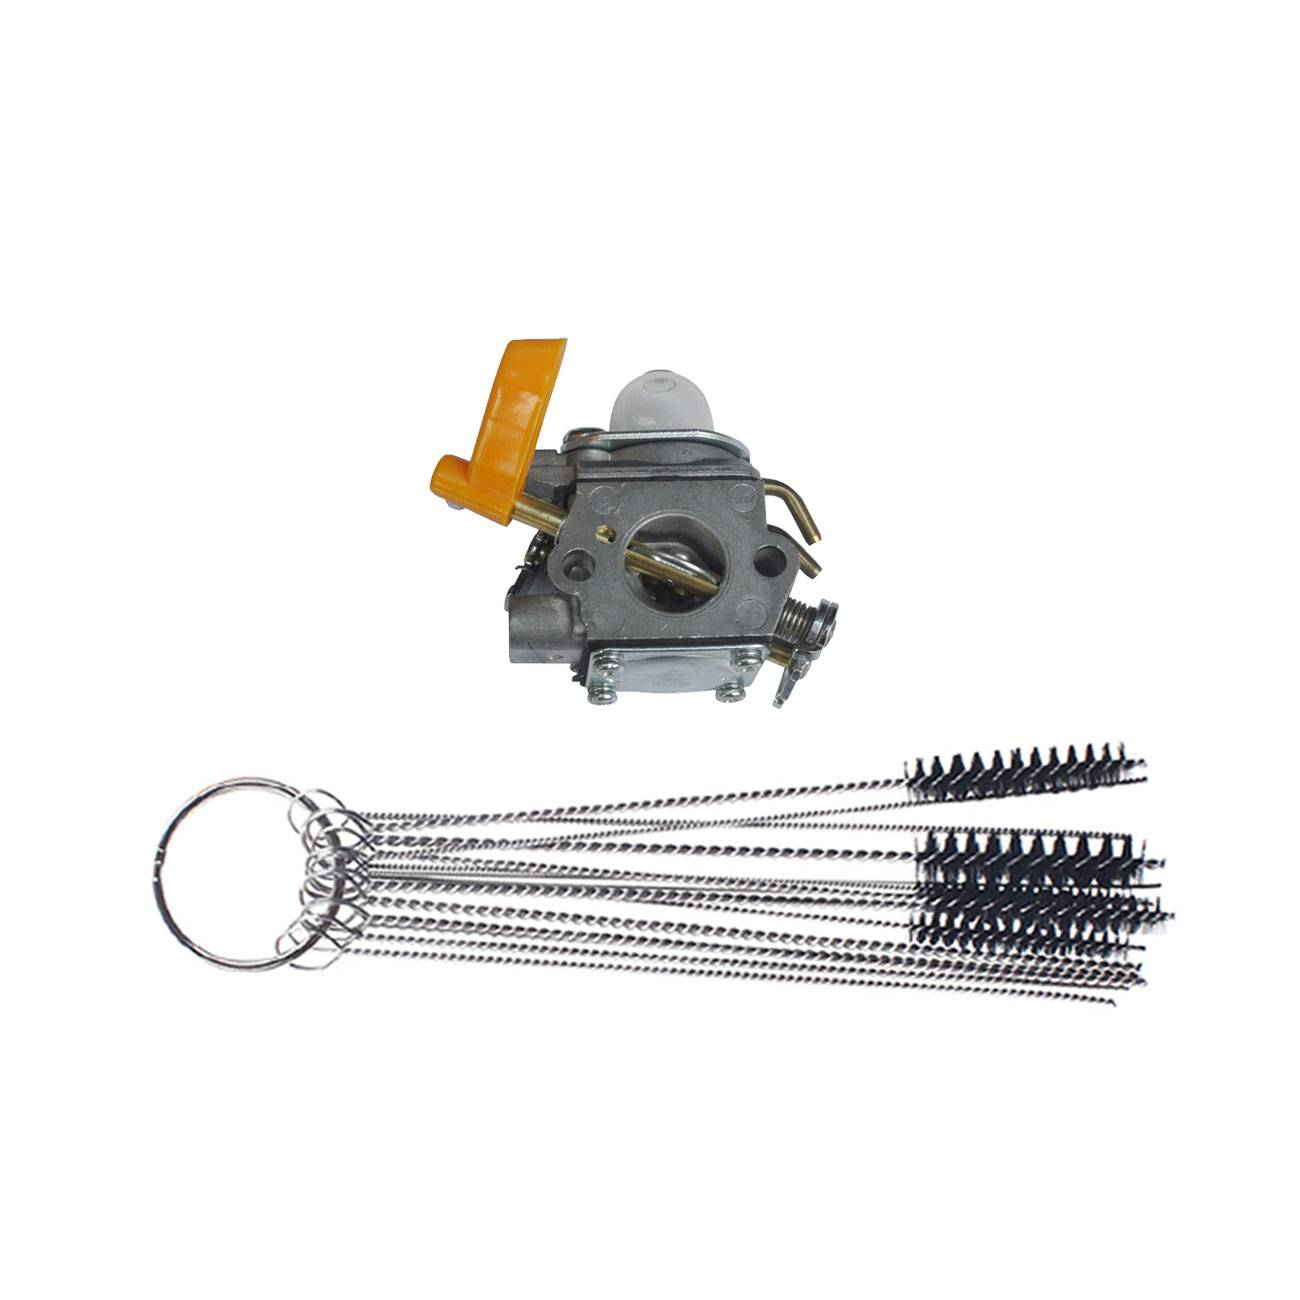 Carburetor & cleaning brush For Ryobi Homelite 26 30cc